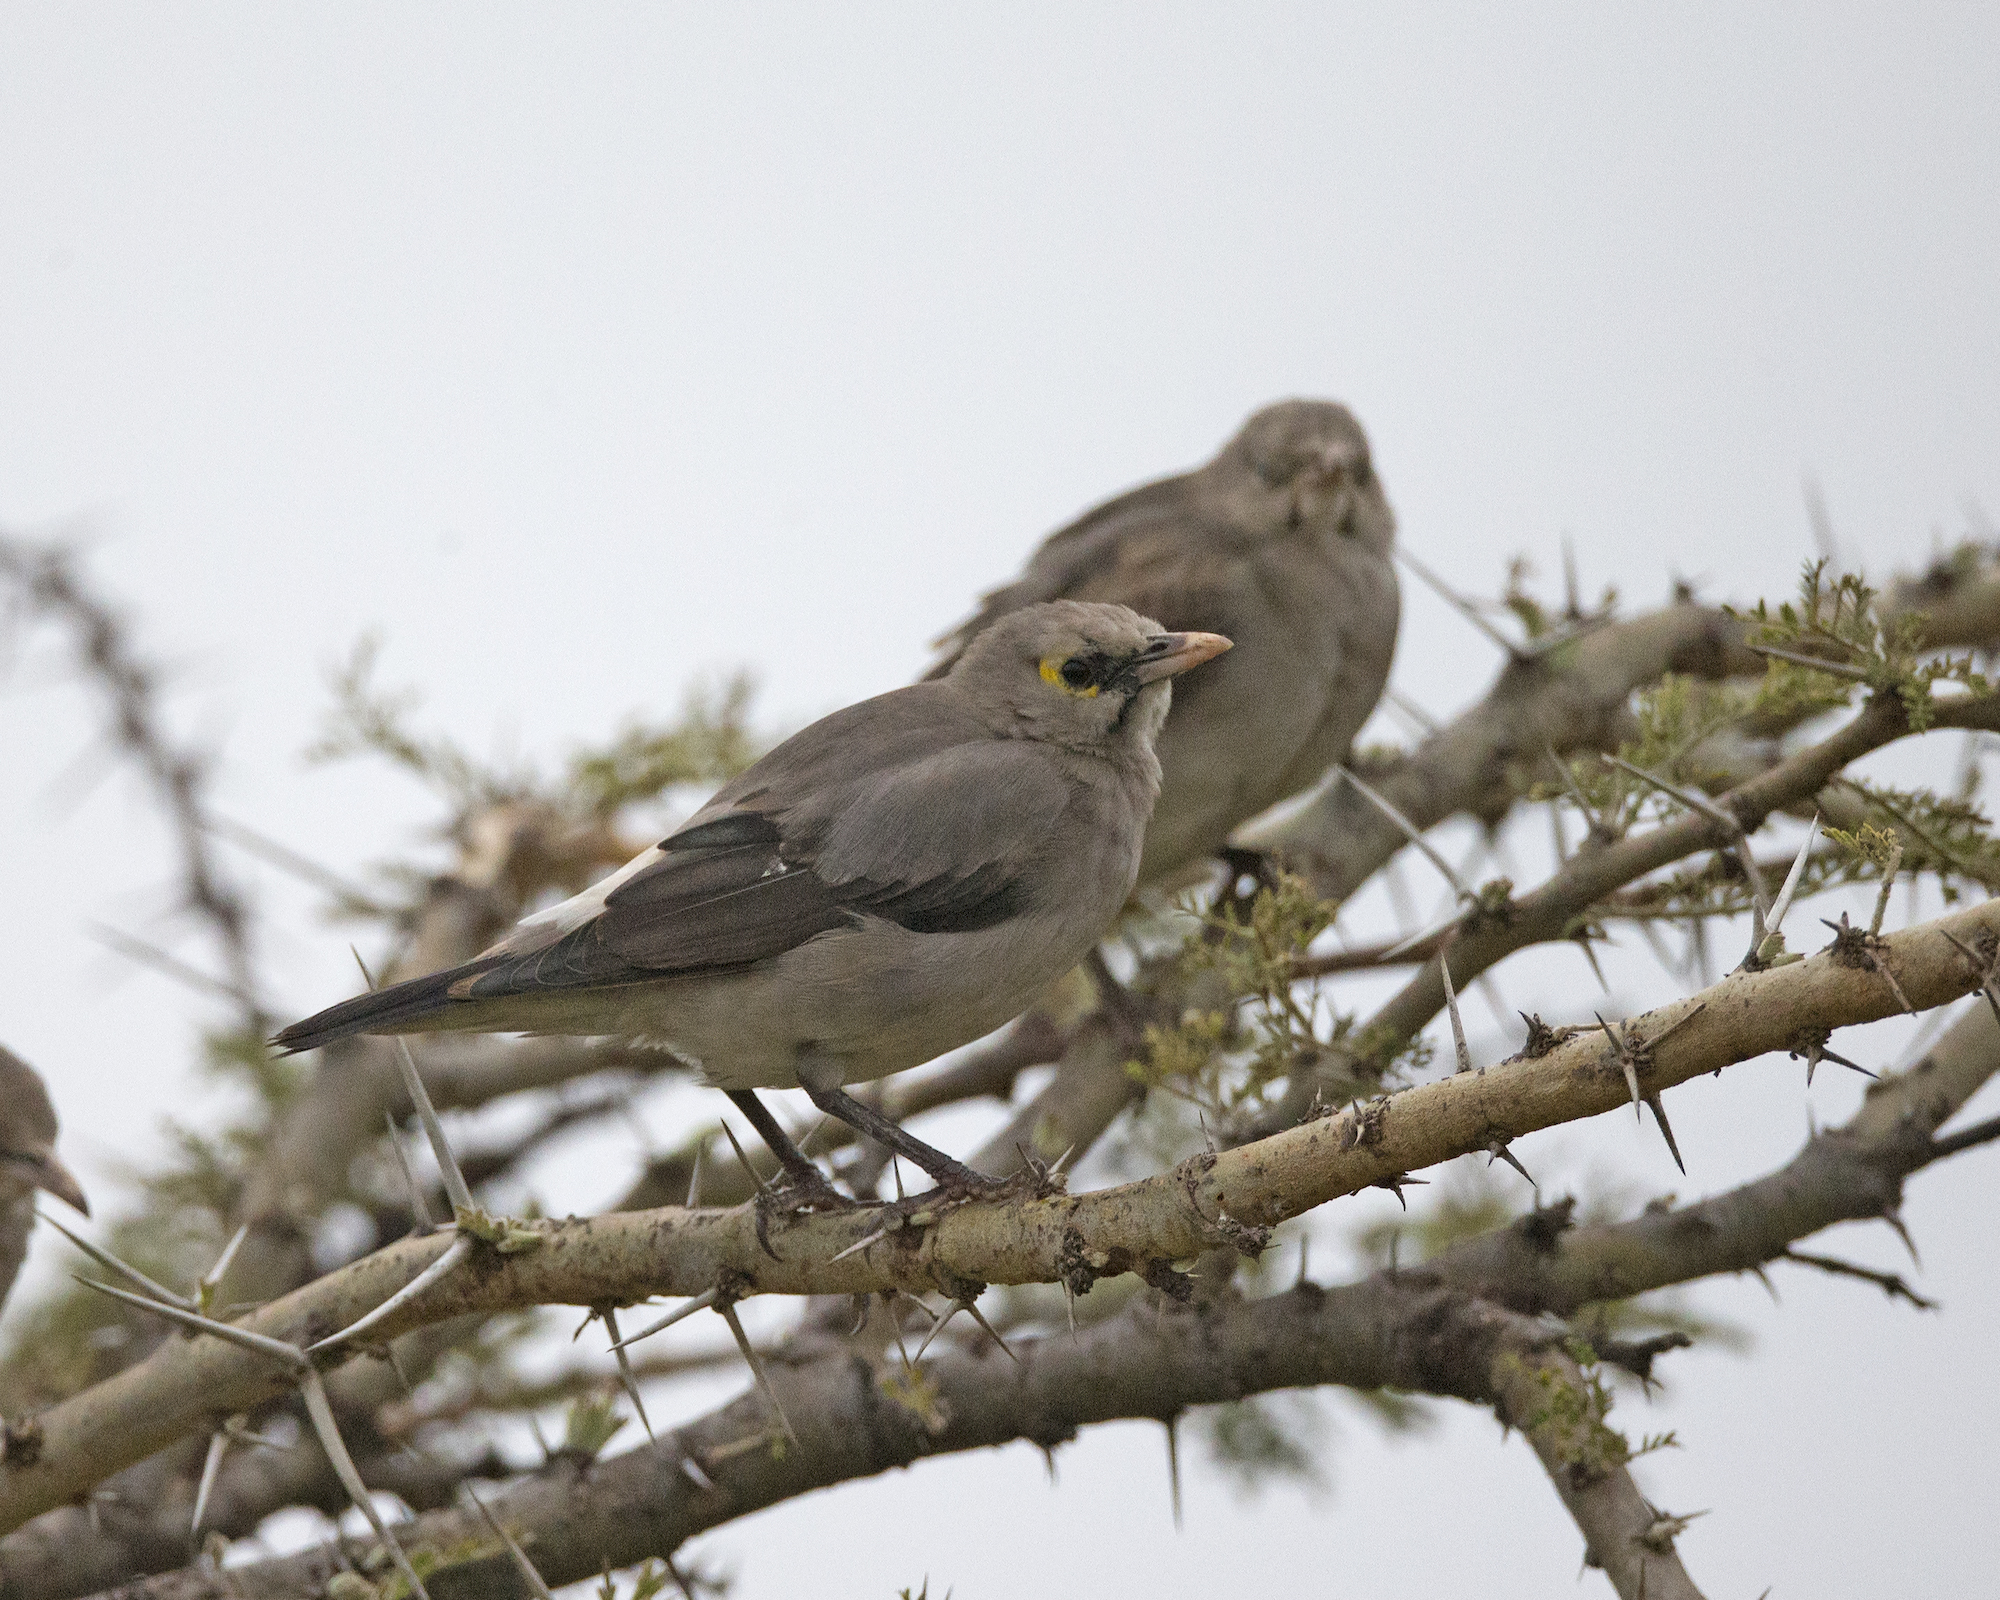 Two grey birds in a tree